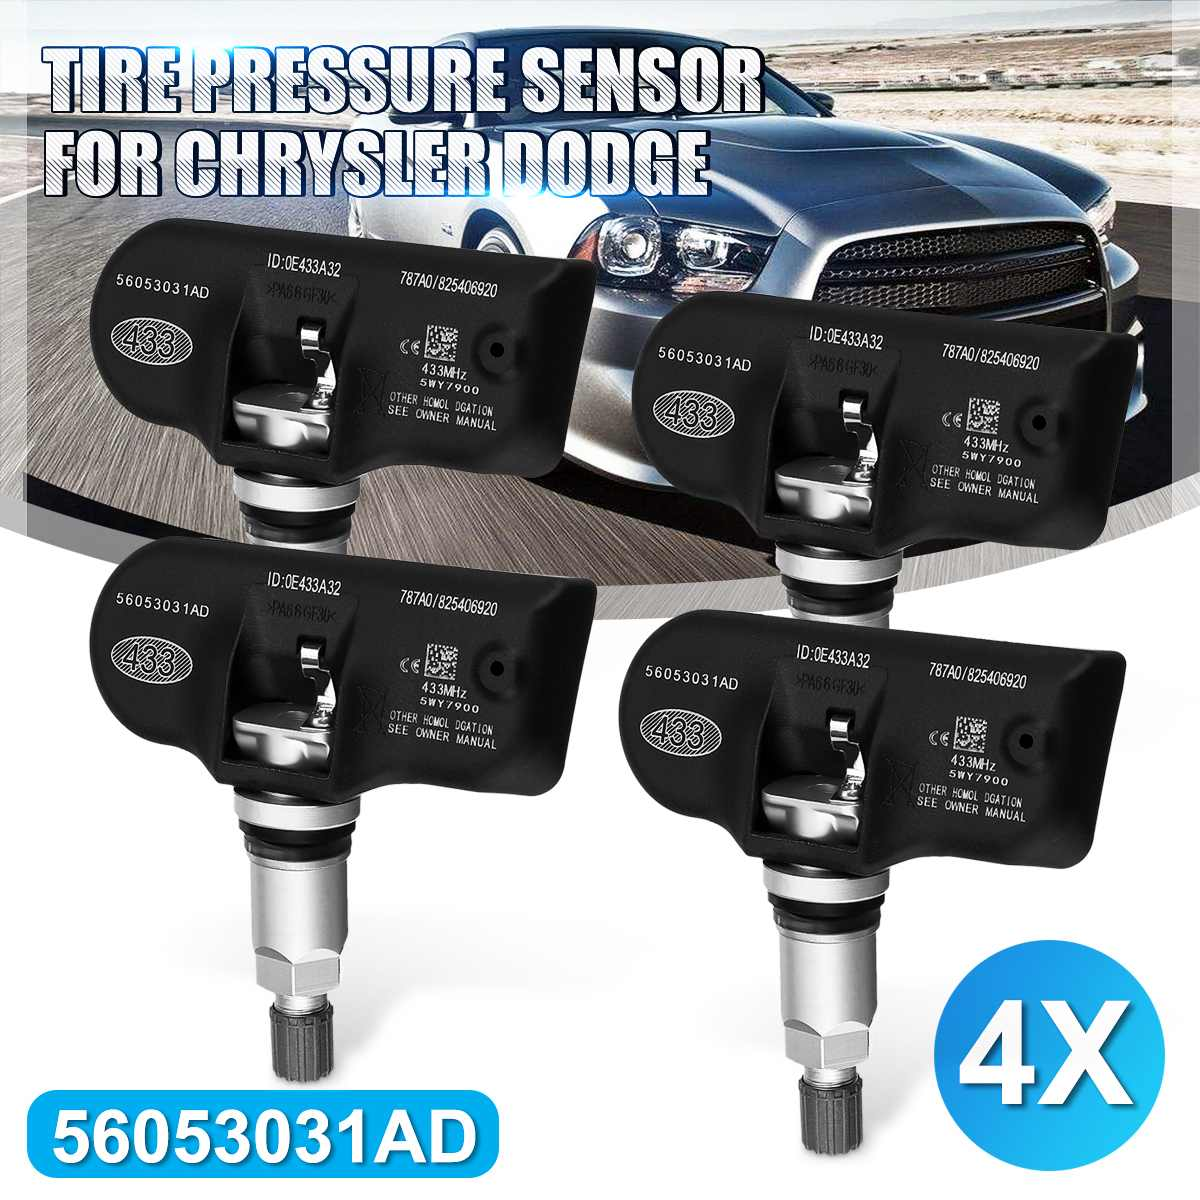 4pcs 56053031AD Tire Pressure Monitoring Sensor TPMS For Chrysler 200 300 Sebring For Dodge Avenger Caliber Jounrey